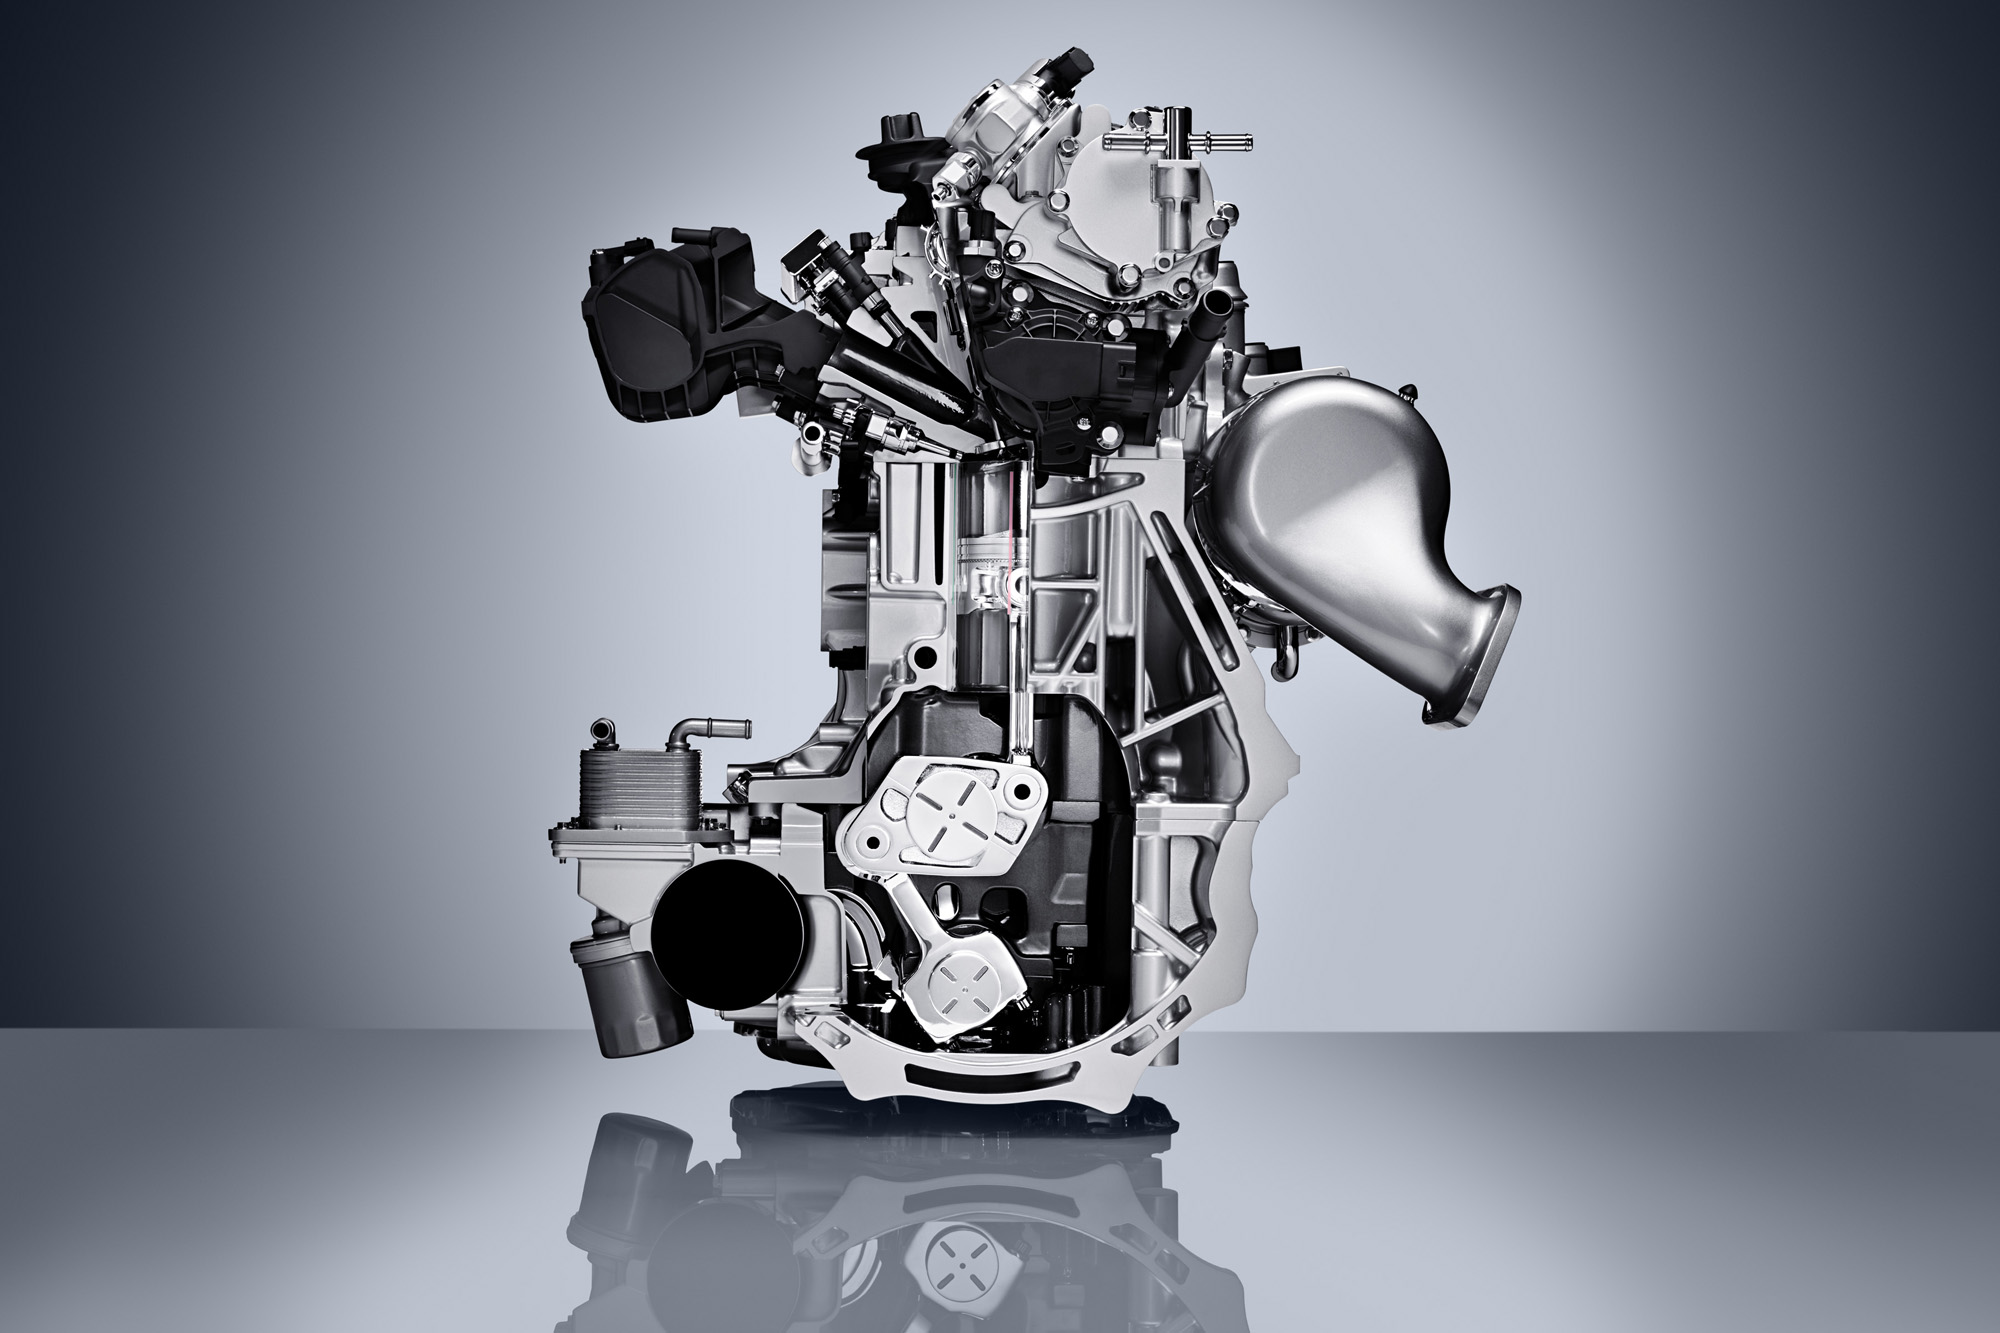 INFINITI Marks Global Debut of VC-Turbo Engine